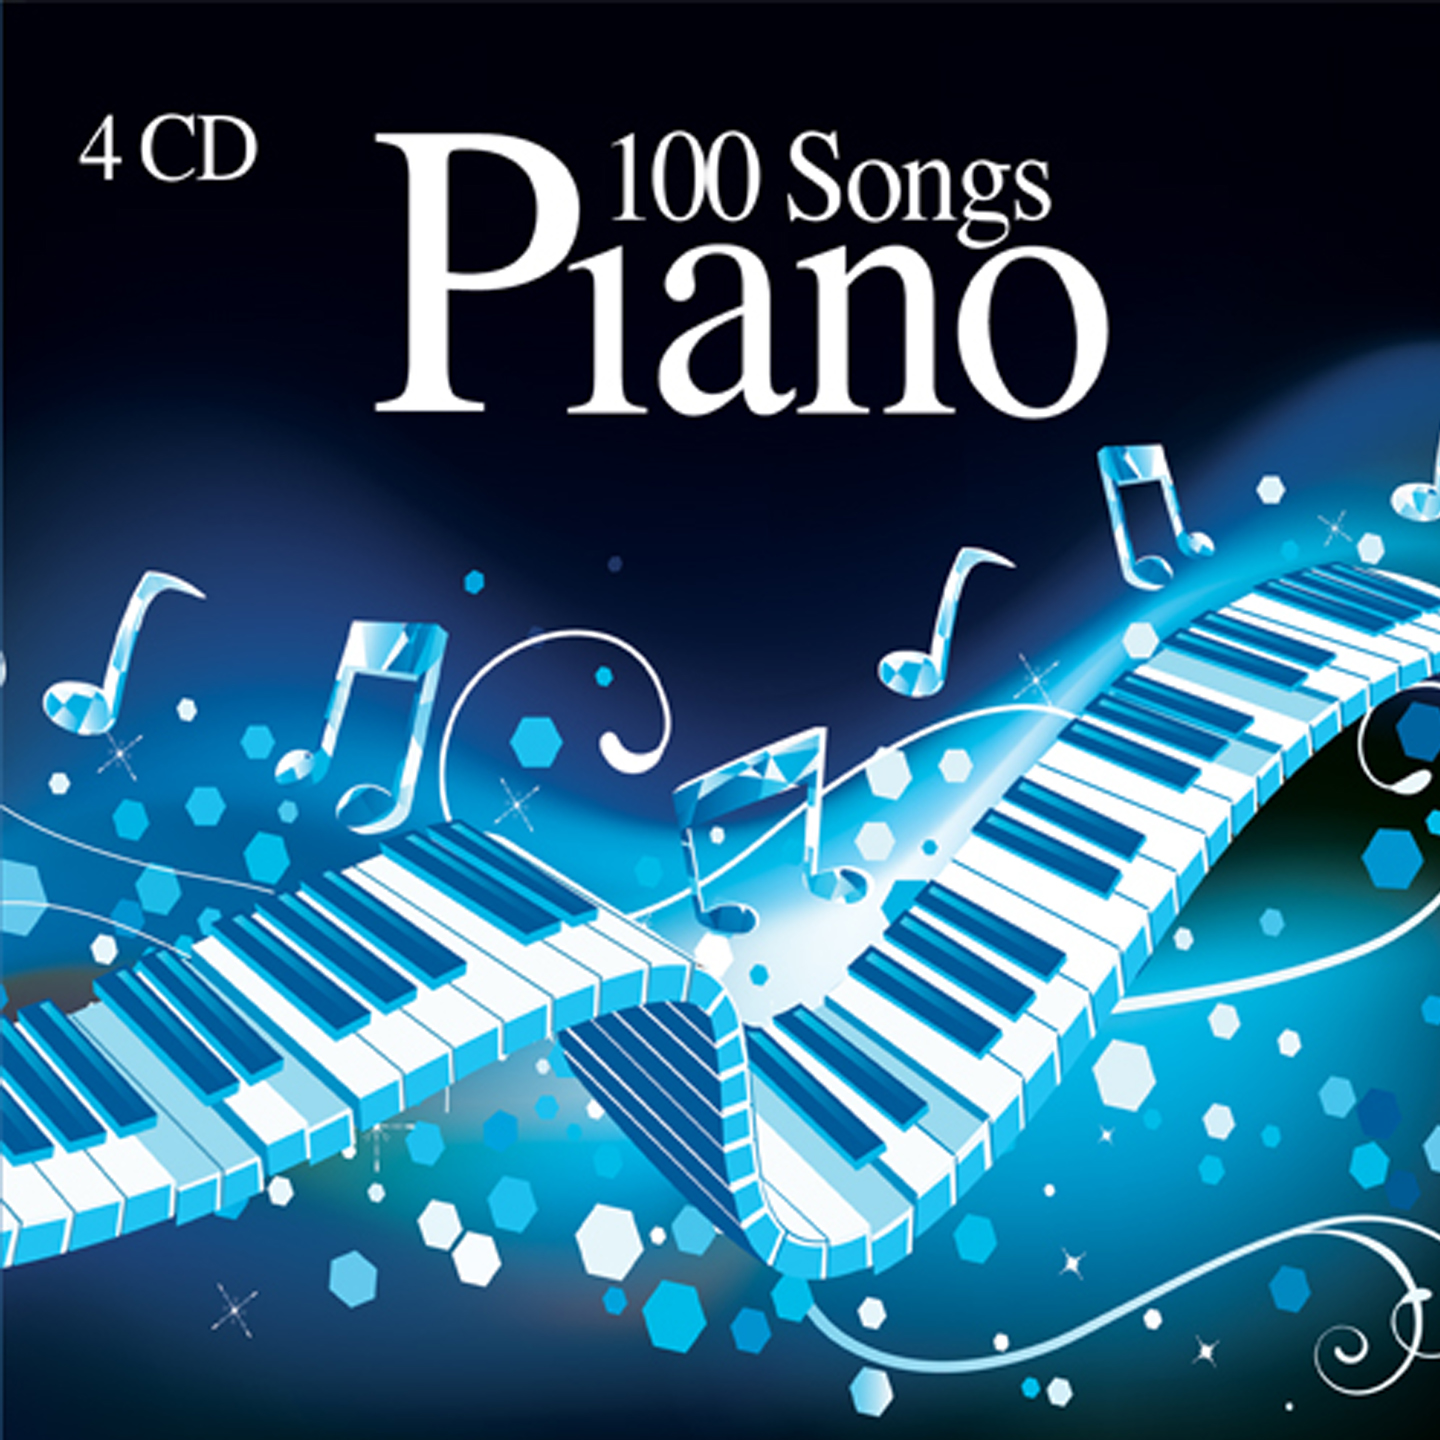 100 Songs Piano